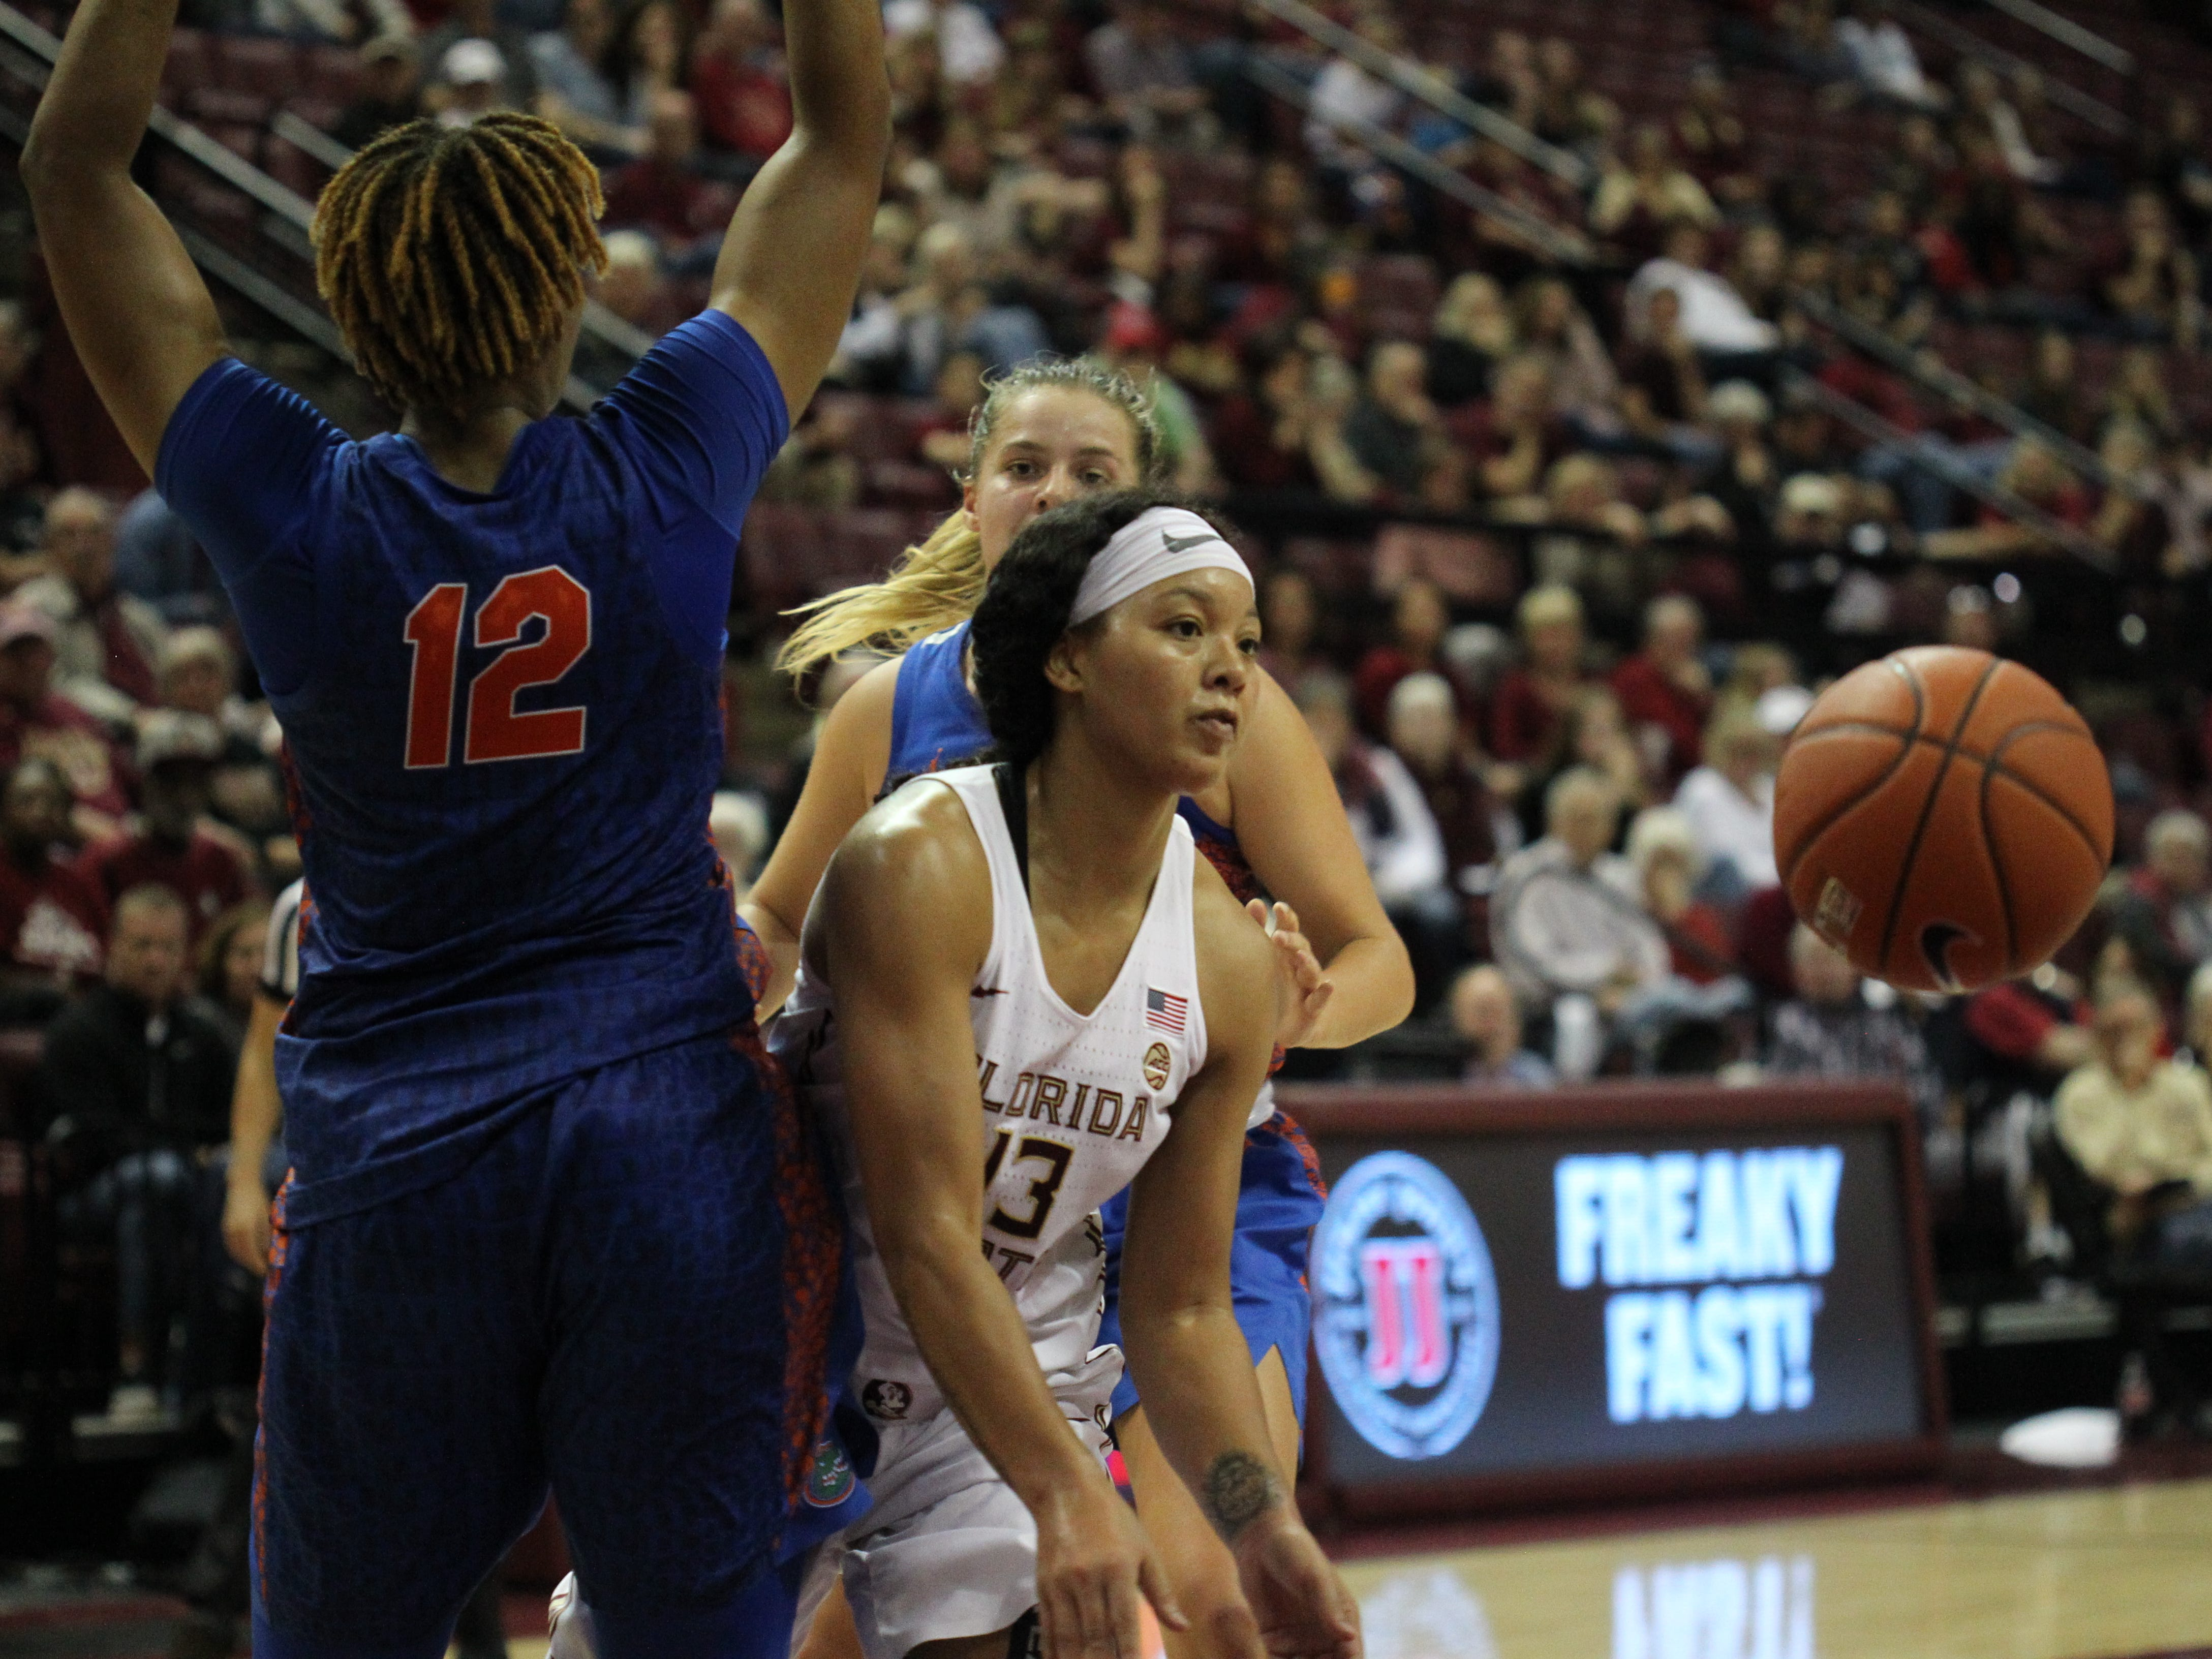 Florida State's Nausia Woolfolk flips an underhanded pass during the second half of the Seminoles' game against Florida at the Tucker Civic Center on Nov. 11, 2018.